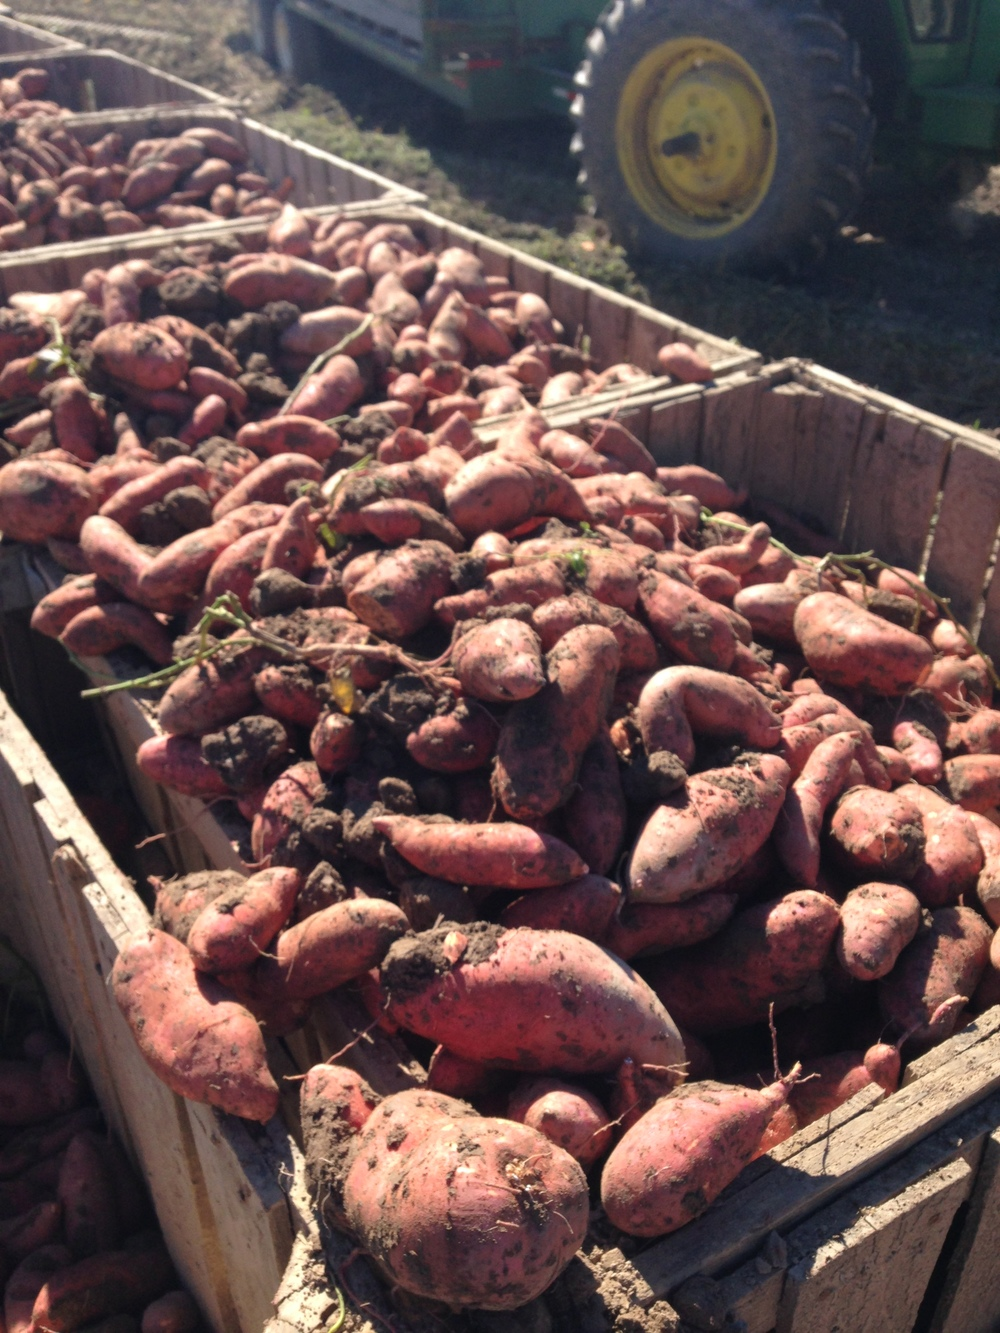 Sweet potatoes dug at Alexander Farms in Vardaman, MS with the Standen TSP1900.